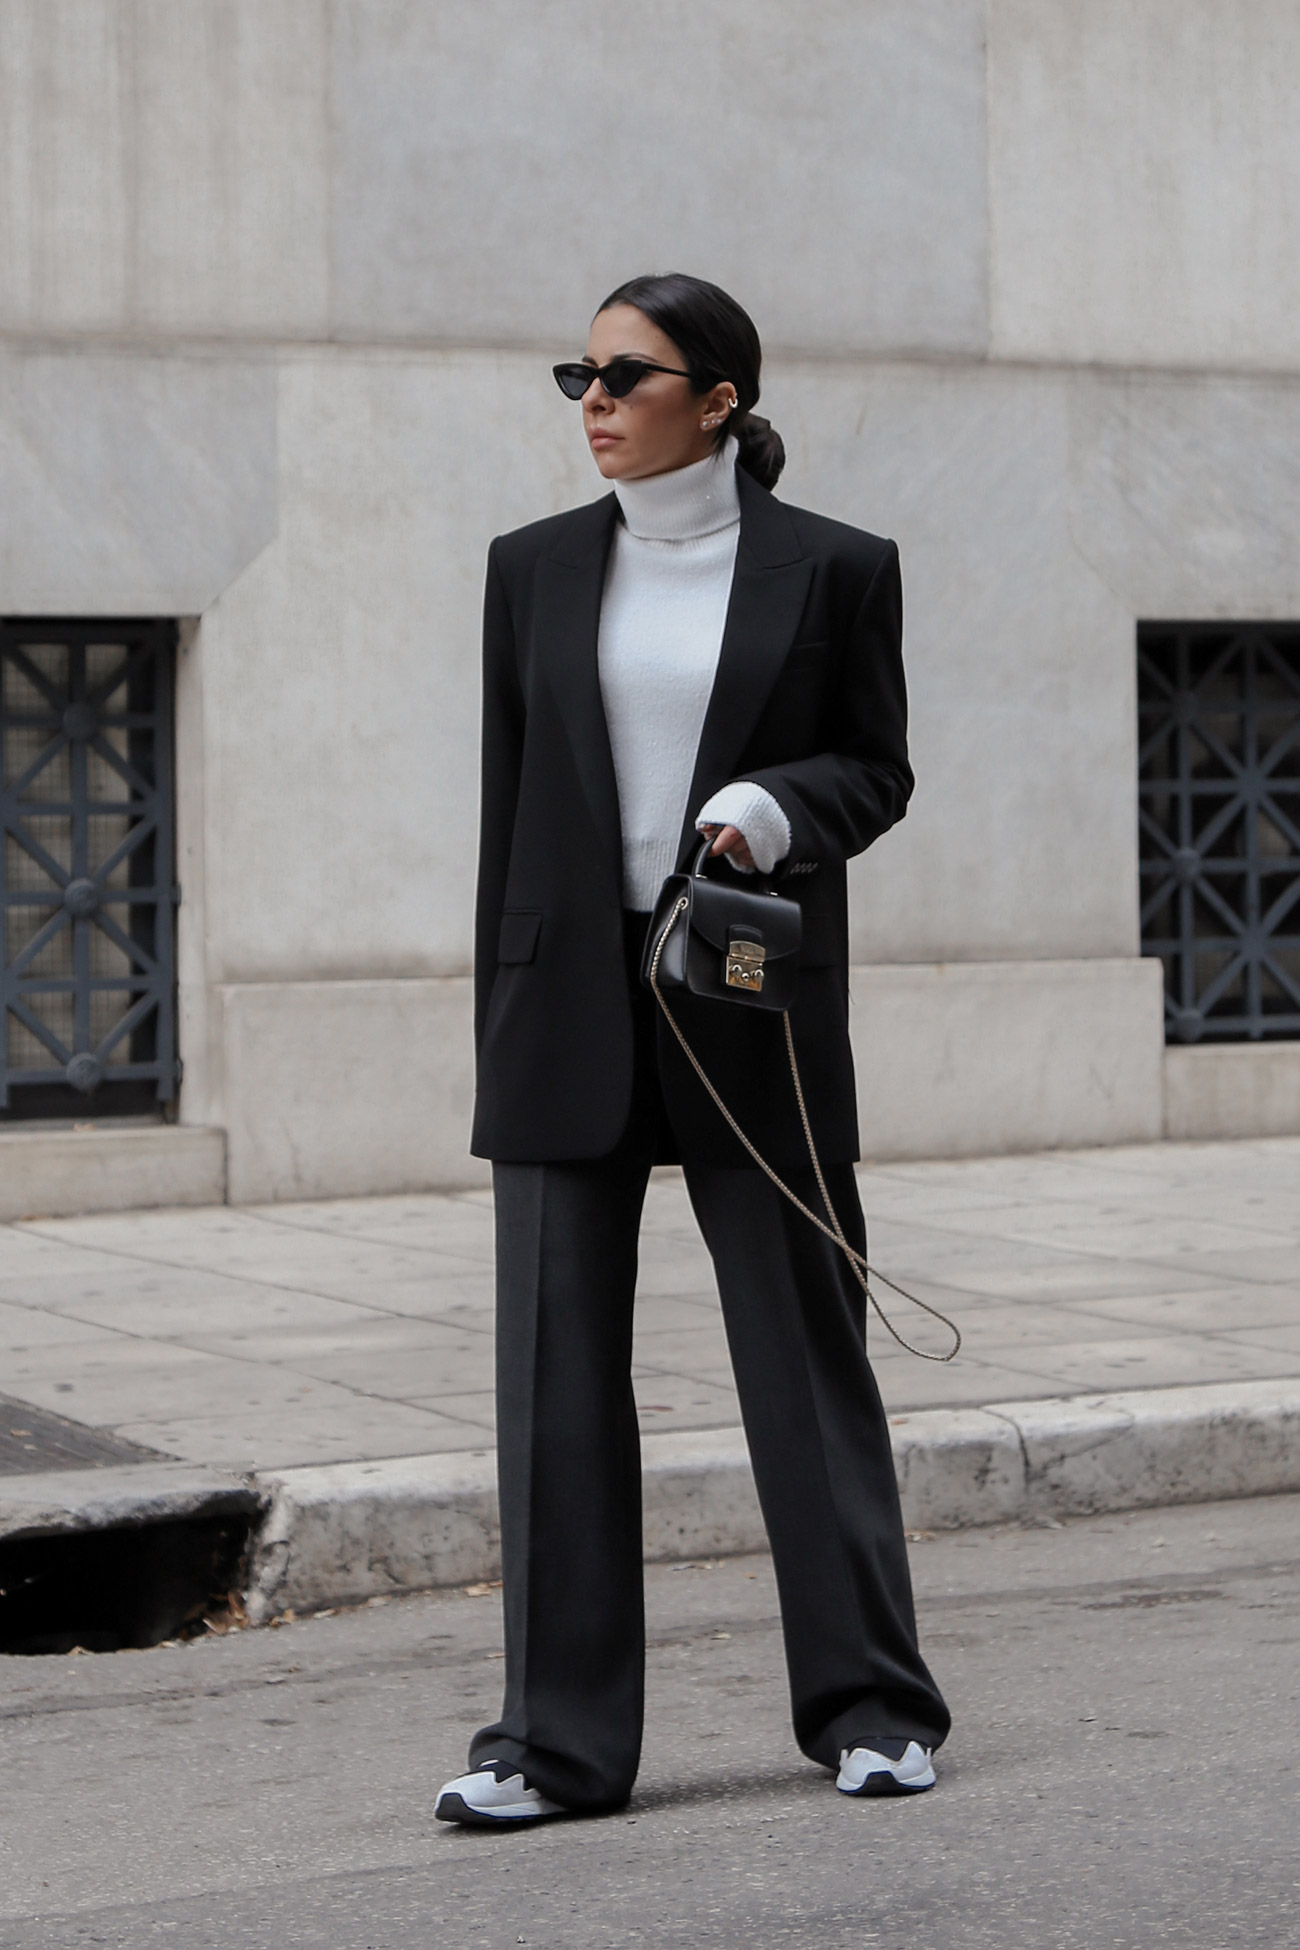 How To Wear A Women's Suit Casually by Stella Asteria